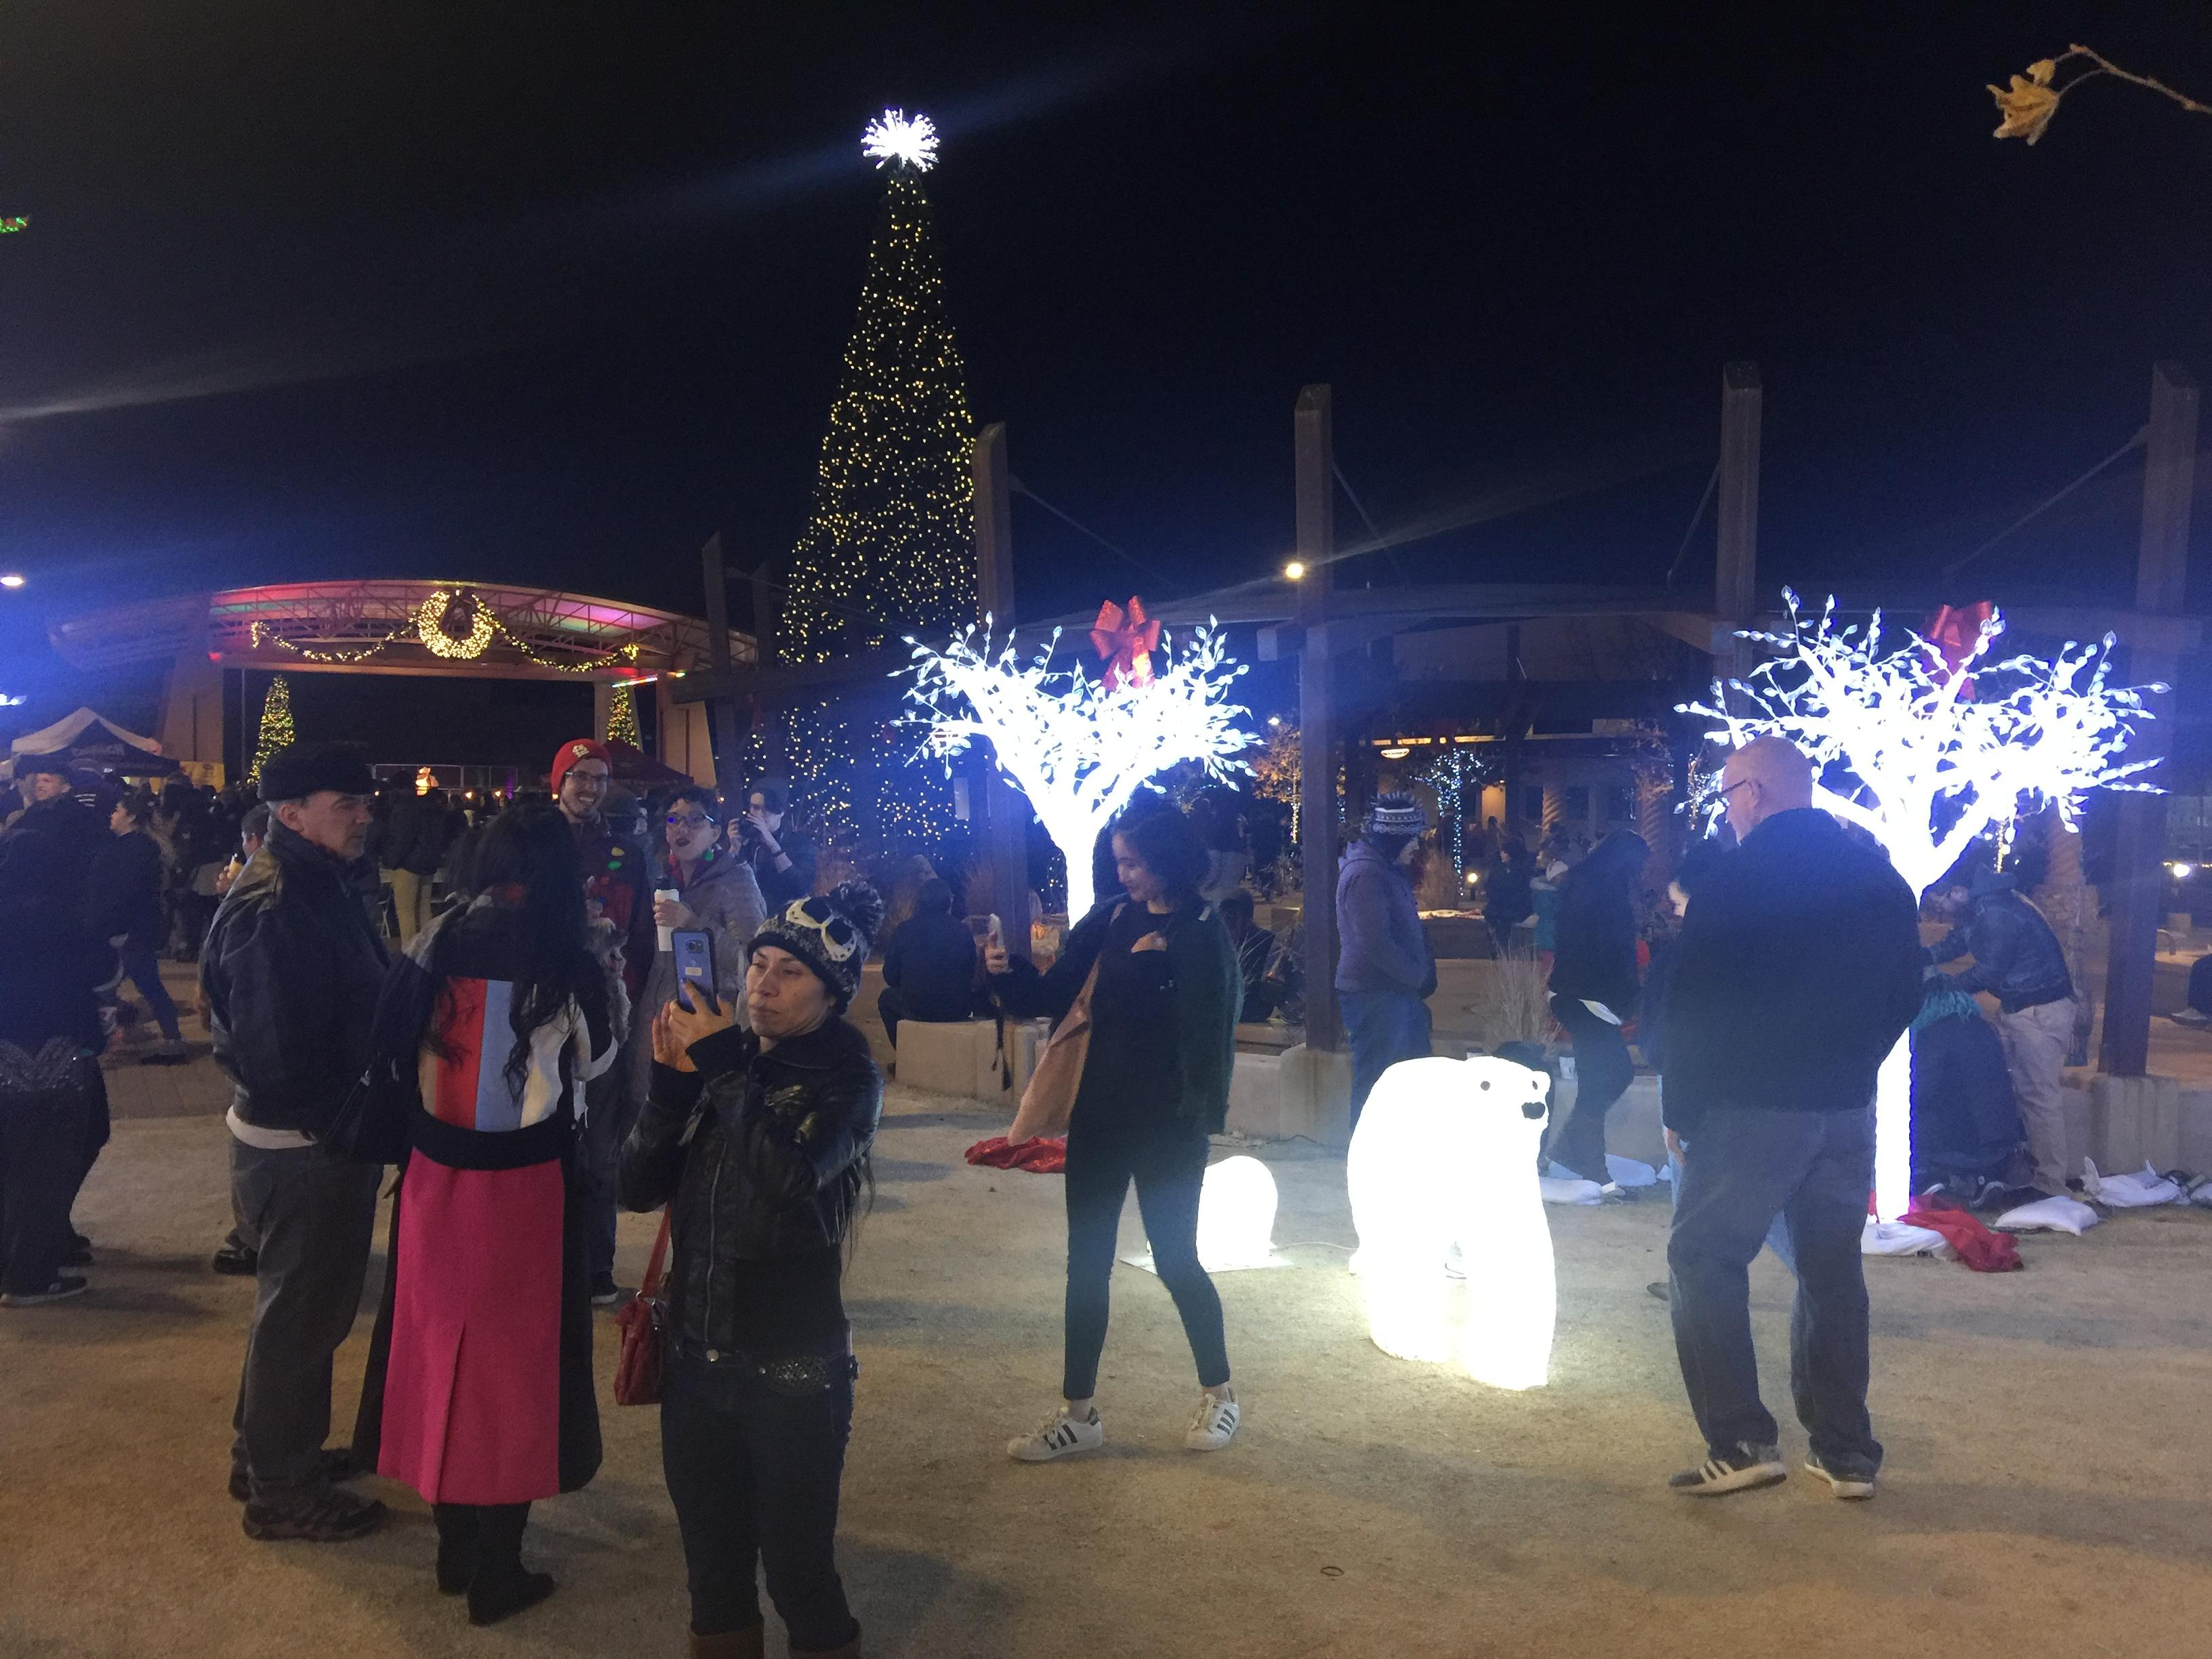 New Years 2018 at the Las Cruces Plaza